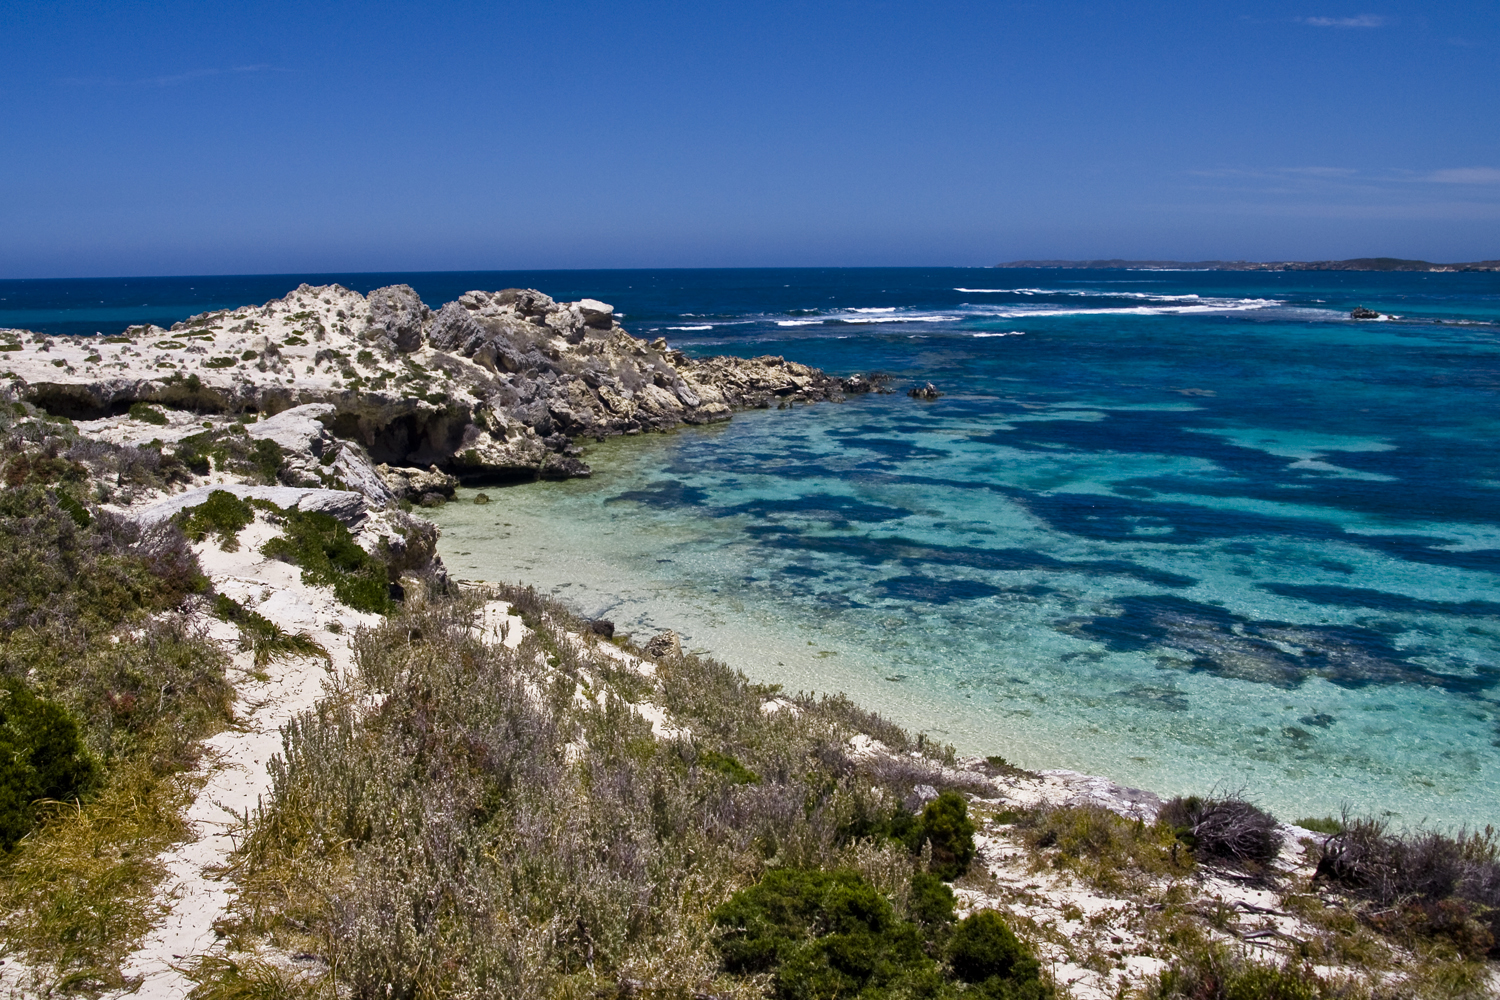 It's not difficult to see why Rottnest Island is a popular escape from Perth. Image by Anhgemus Dinh / Flickr